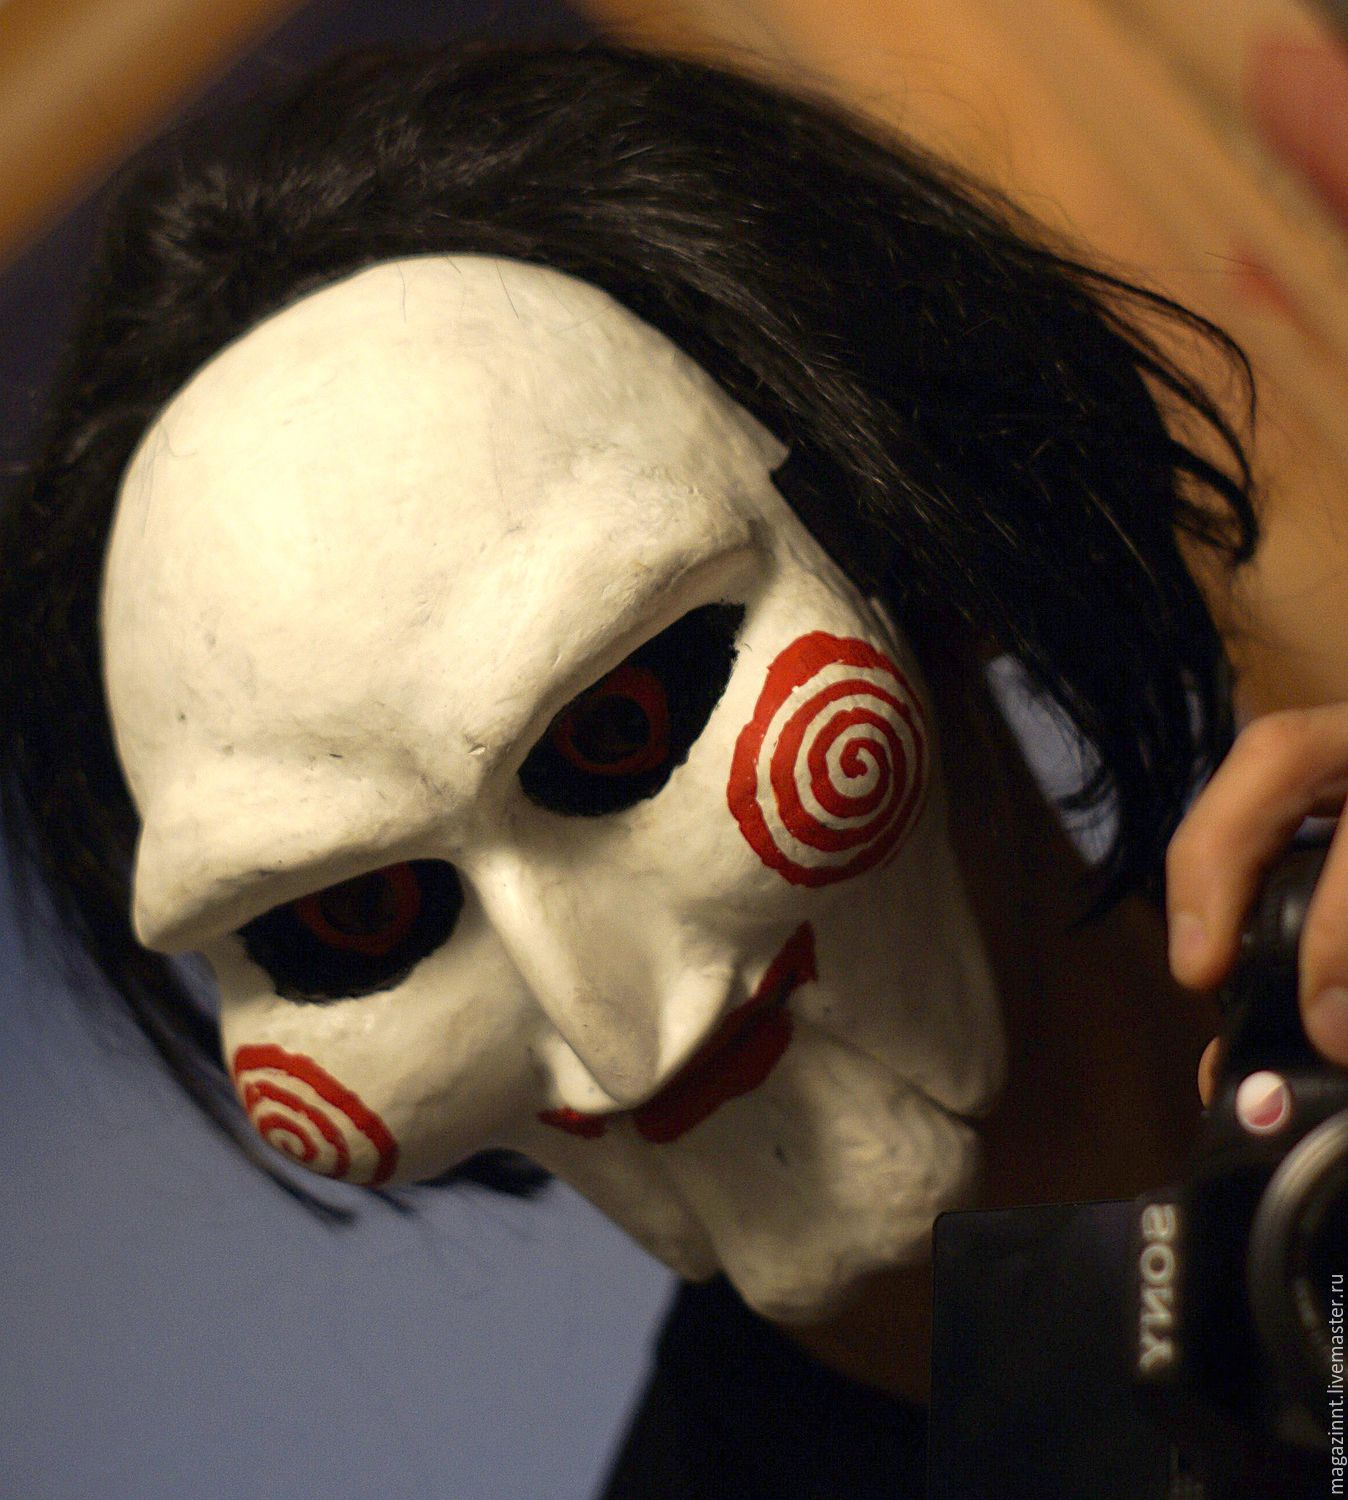 Home Interior Design Online Magazine Saw Jigsaw Billy The Puppet Mask With Wig Shop Online